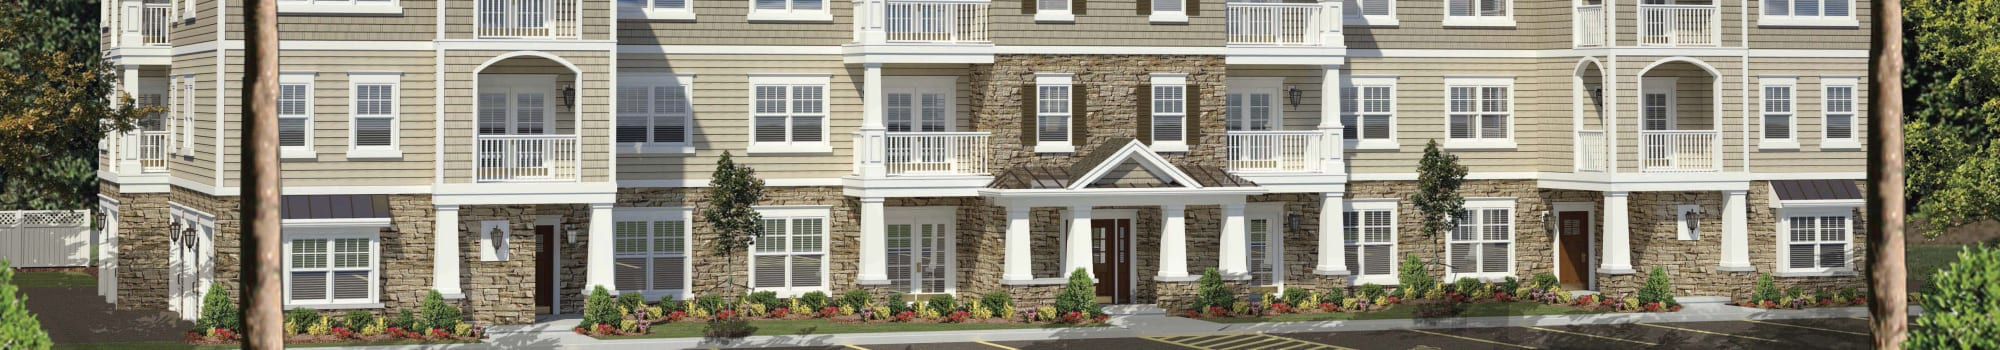 View the features and amenities offered at Winding Creek Apartments in Webster, New York.